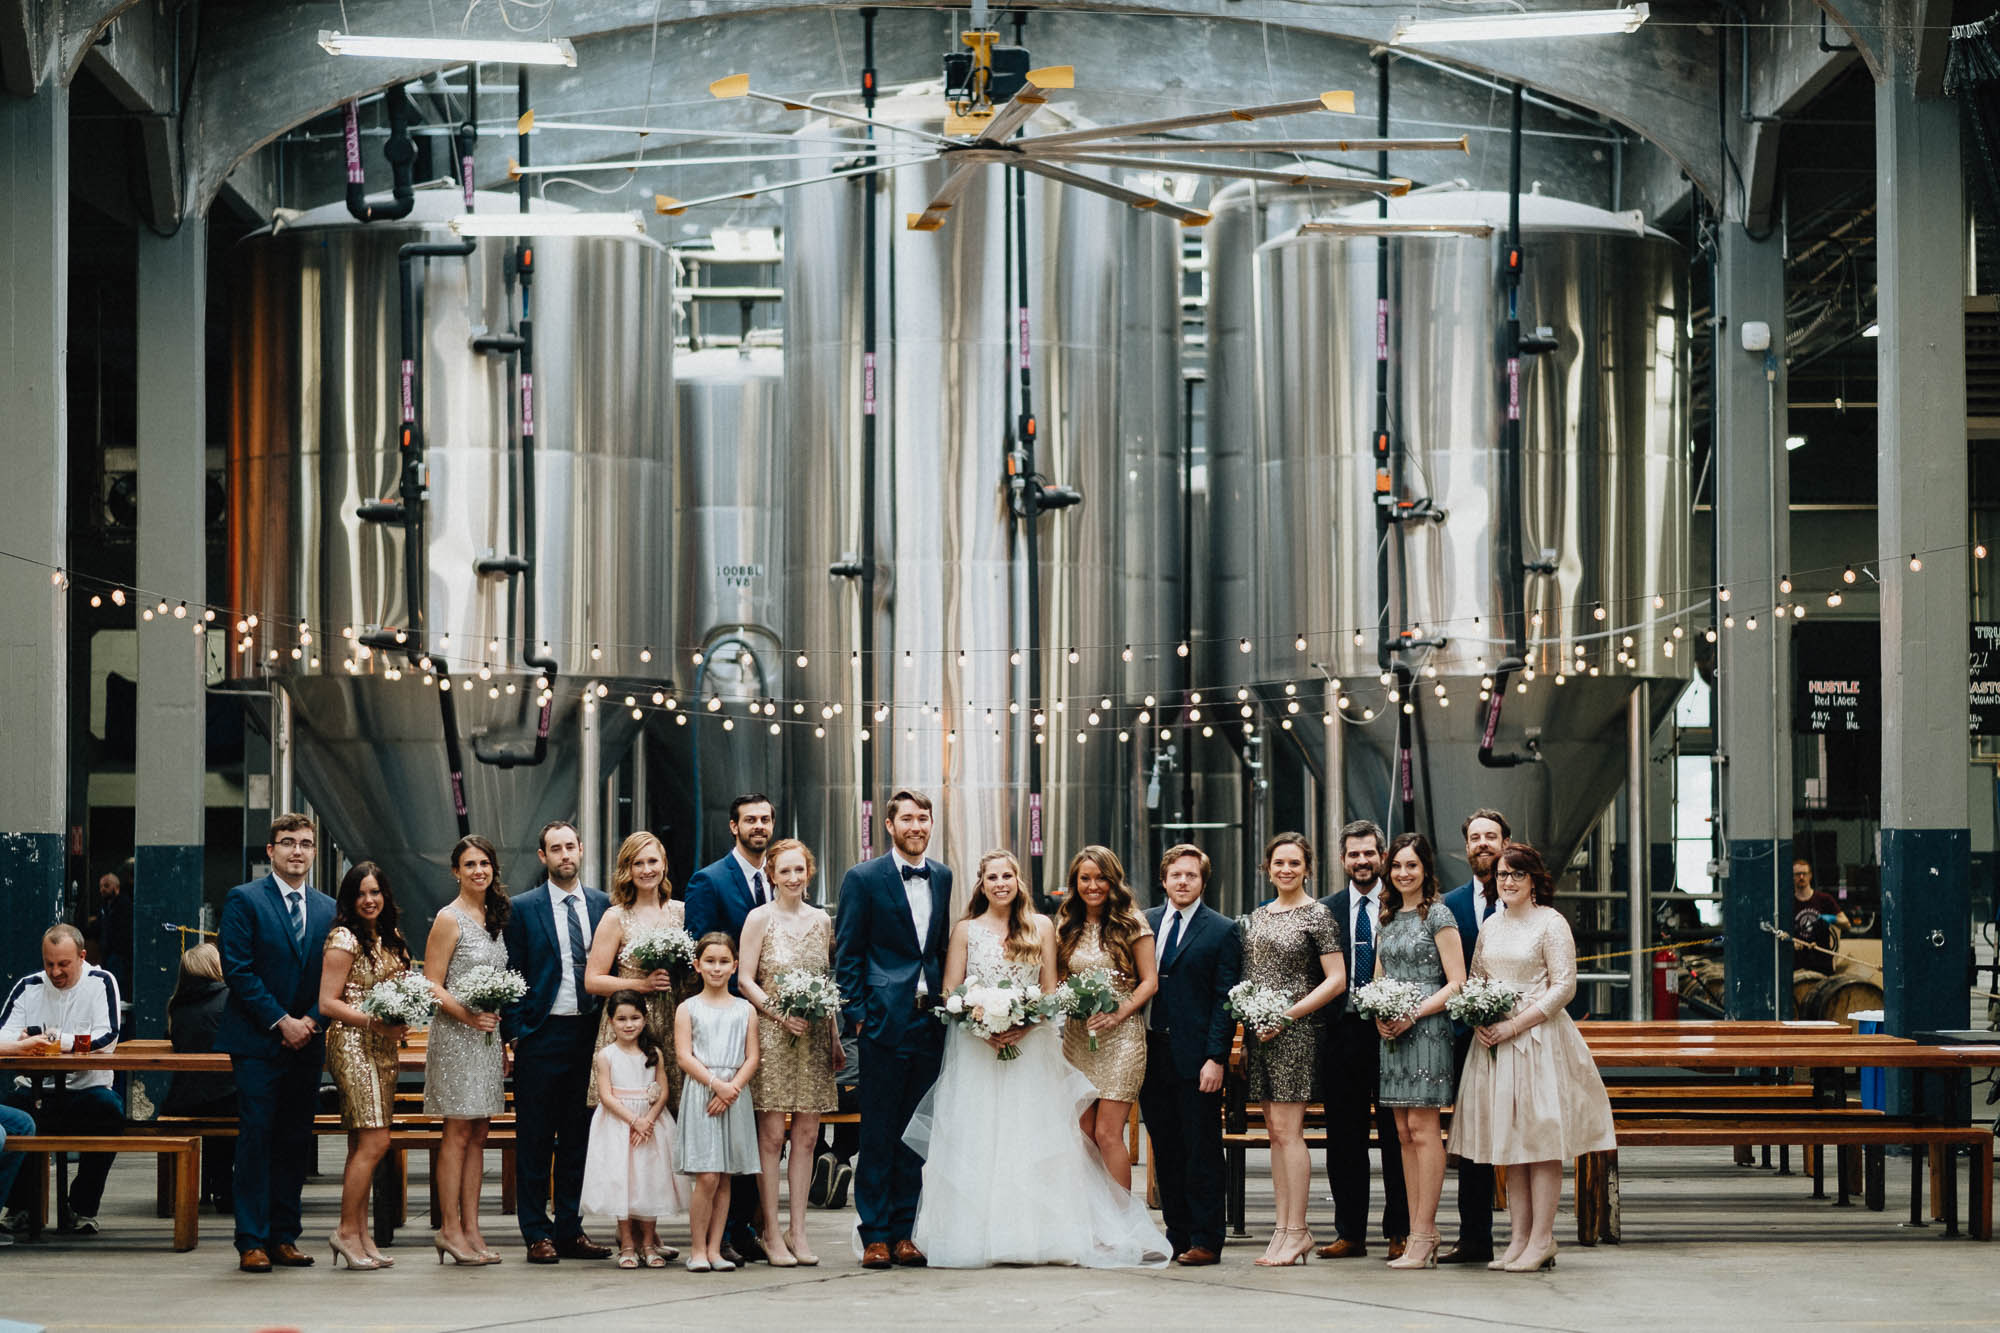 Rhinegiest Brewery Wedding Bridal Party Cincinnati Ohio